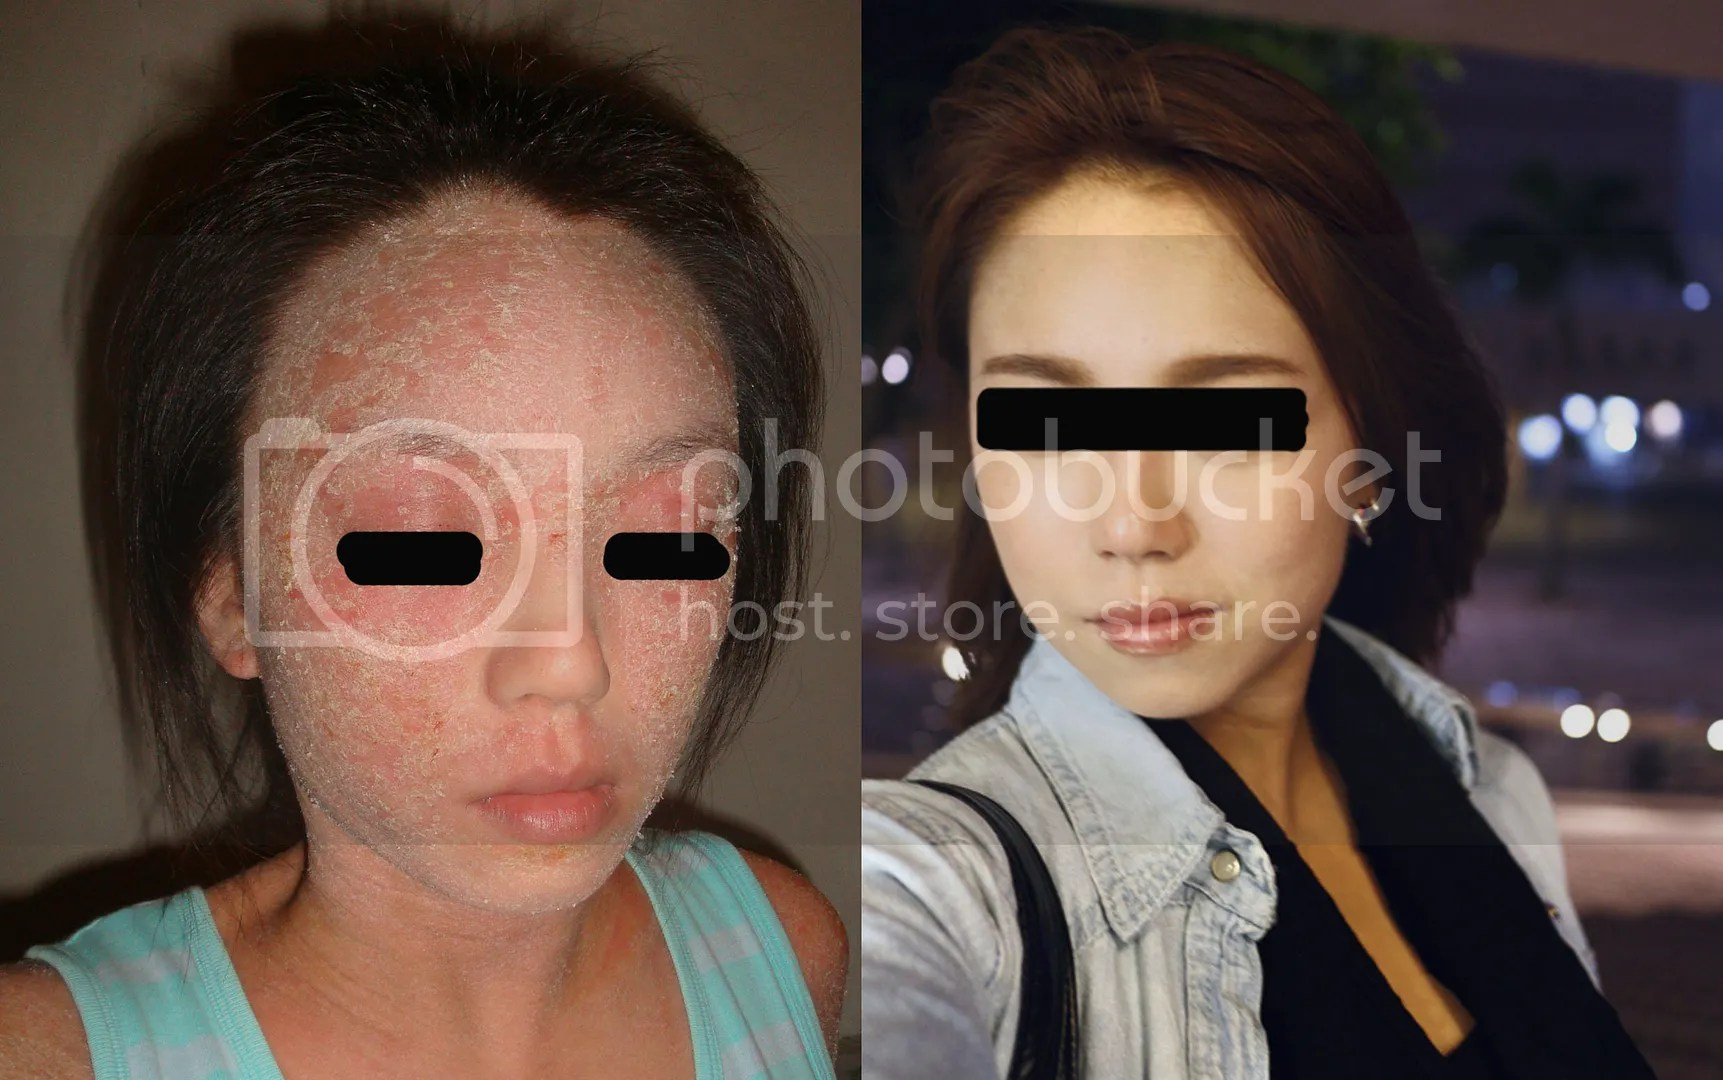 Topical steroid withdrawal before and after, healed